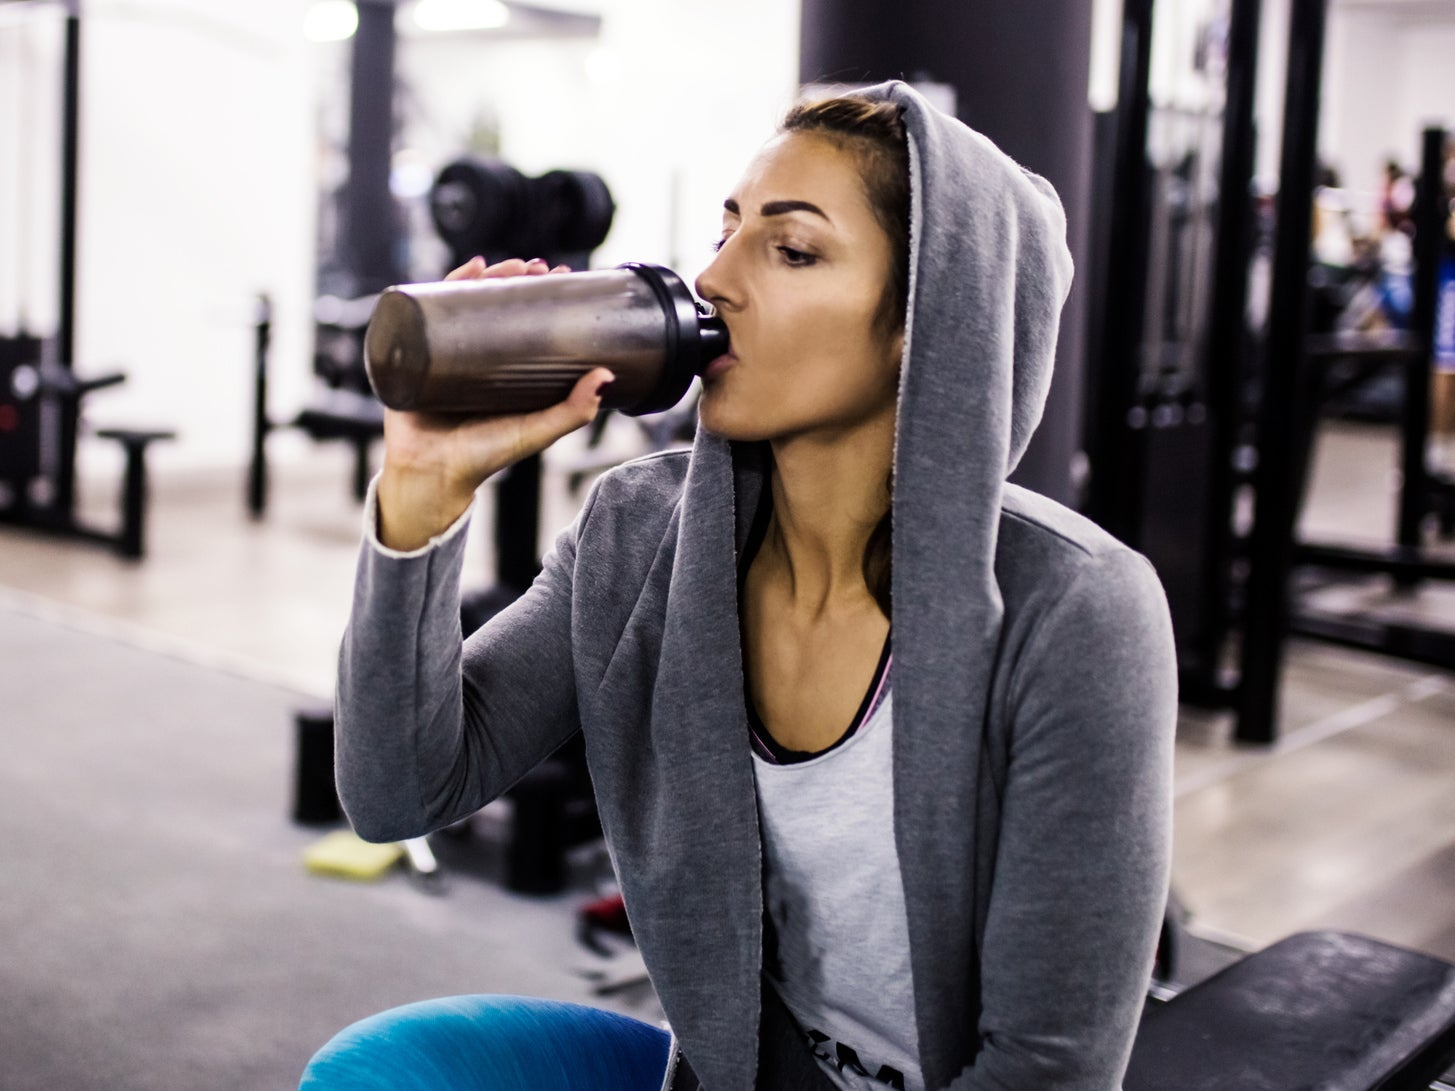 Drinking too many protein shakes could reduce lifespan, scientists claim 1